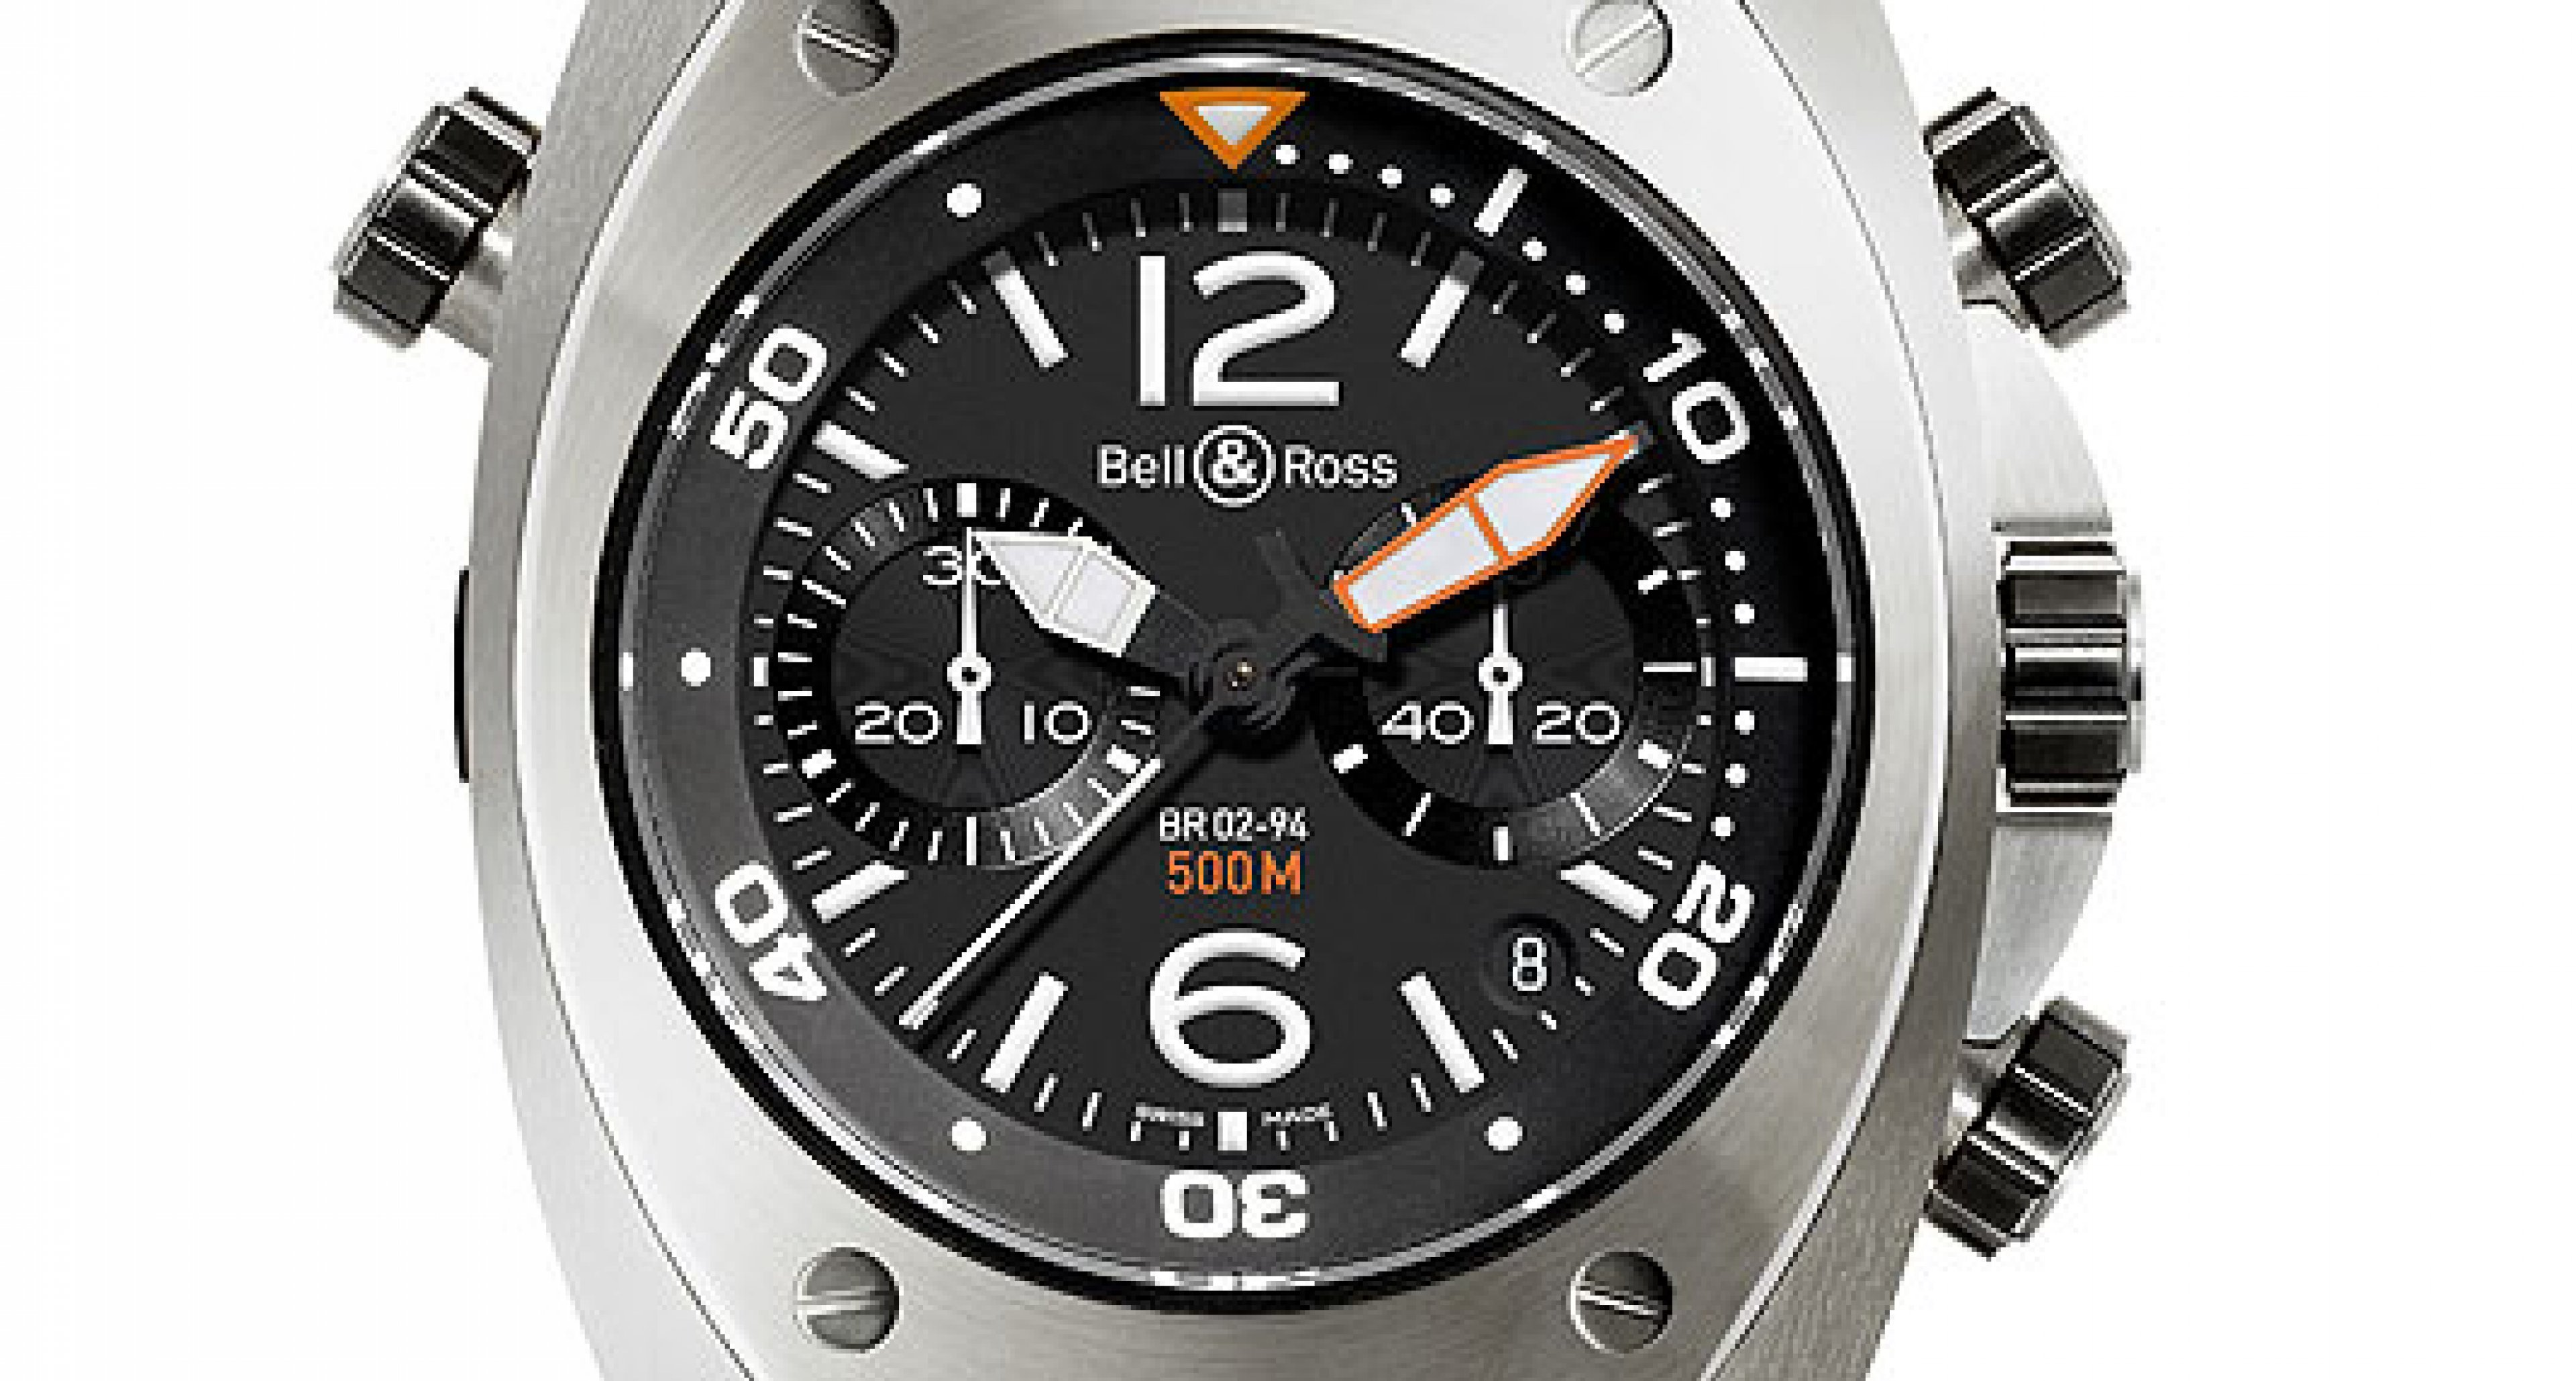 Bell & Ross: New Models to Debut at Baselworld